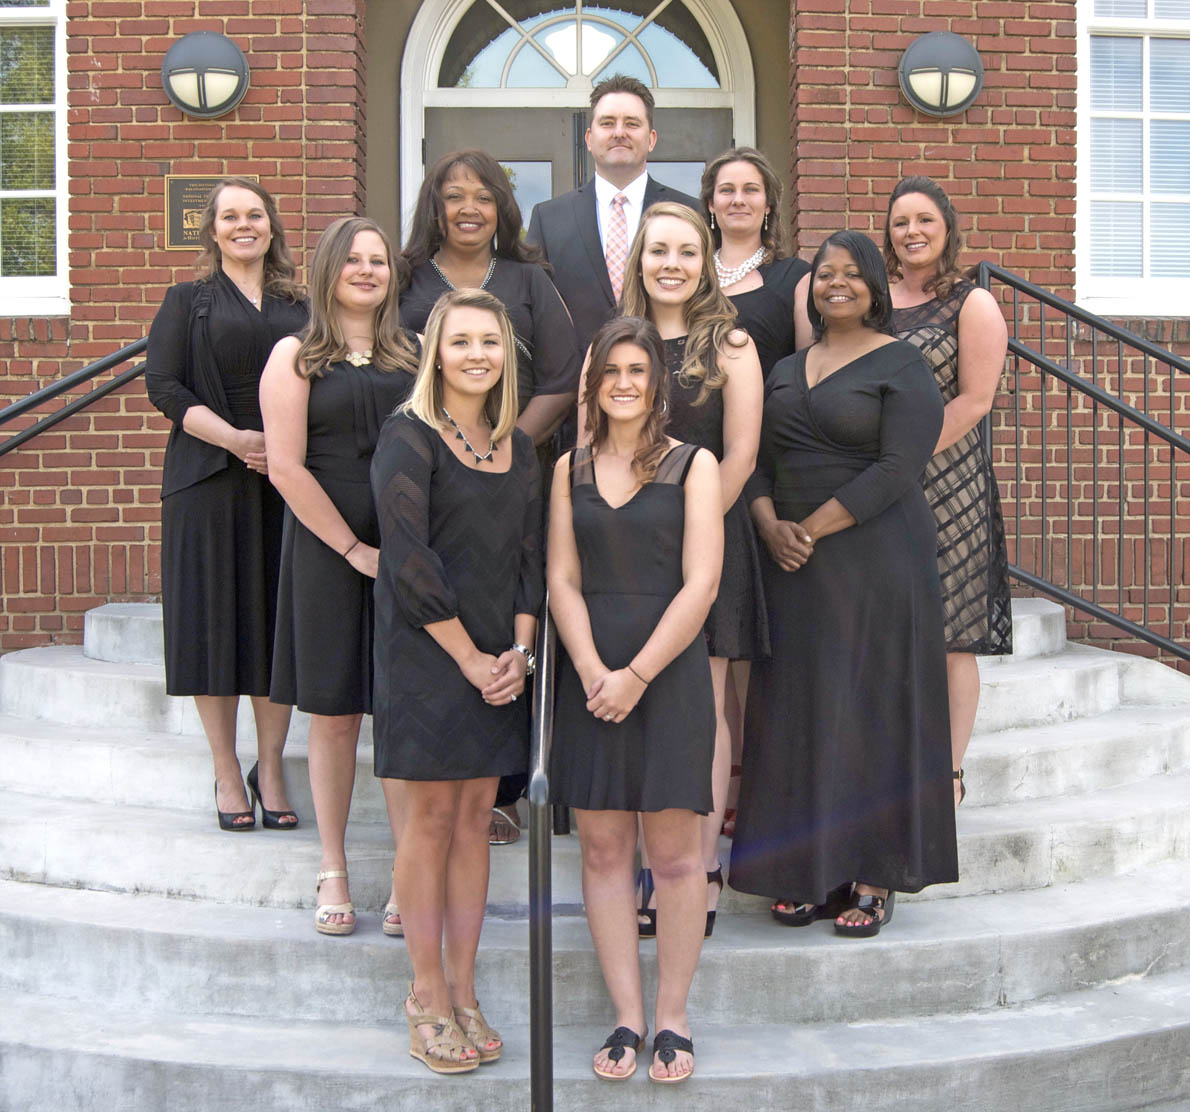 Click to enlarge,  Members of the Central Carolina Community College Dental Hygiene Class of 2015 are pictured, left to right: first row, Brittanie Doornbos and Amber Loveless; second row, Aleesha Gardner, Ashley Parker, and Cheryl King; third row, Stephanie Damery, Evelyn Smith-Sutton, Kimberly Rains, and Tiffany Streeter; fourth row, Scott Duff. Not pictured is Lisa Buxton. For more information on the Central Carolina Community College Dental Hygiene program, contact Lora Jackson, CCCC Dental Programs Admissions Counselor, at 919-718-7234 or email ljackson@cccc.edu.